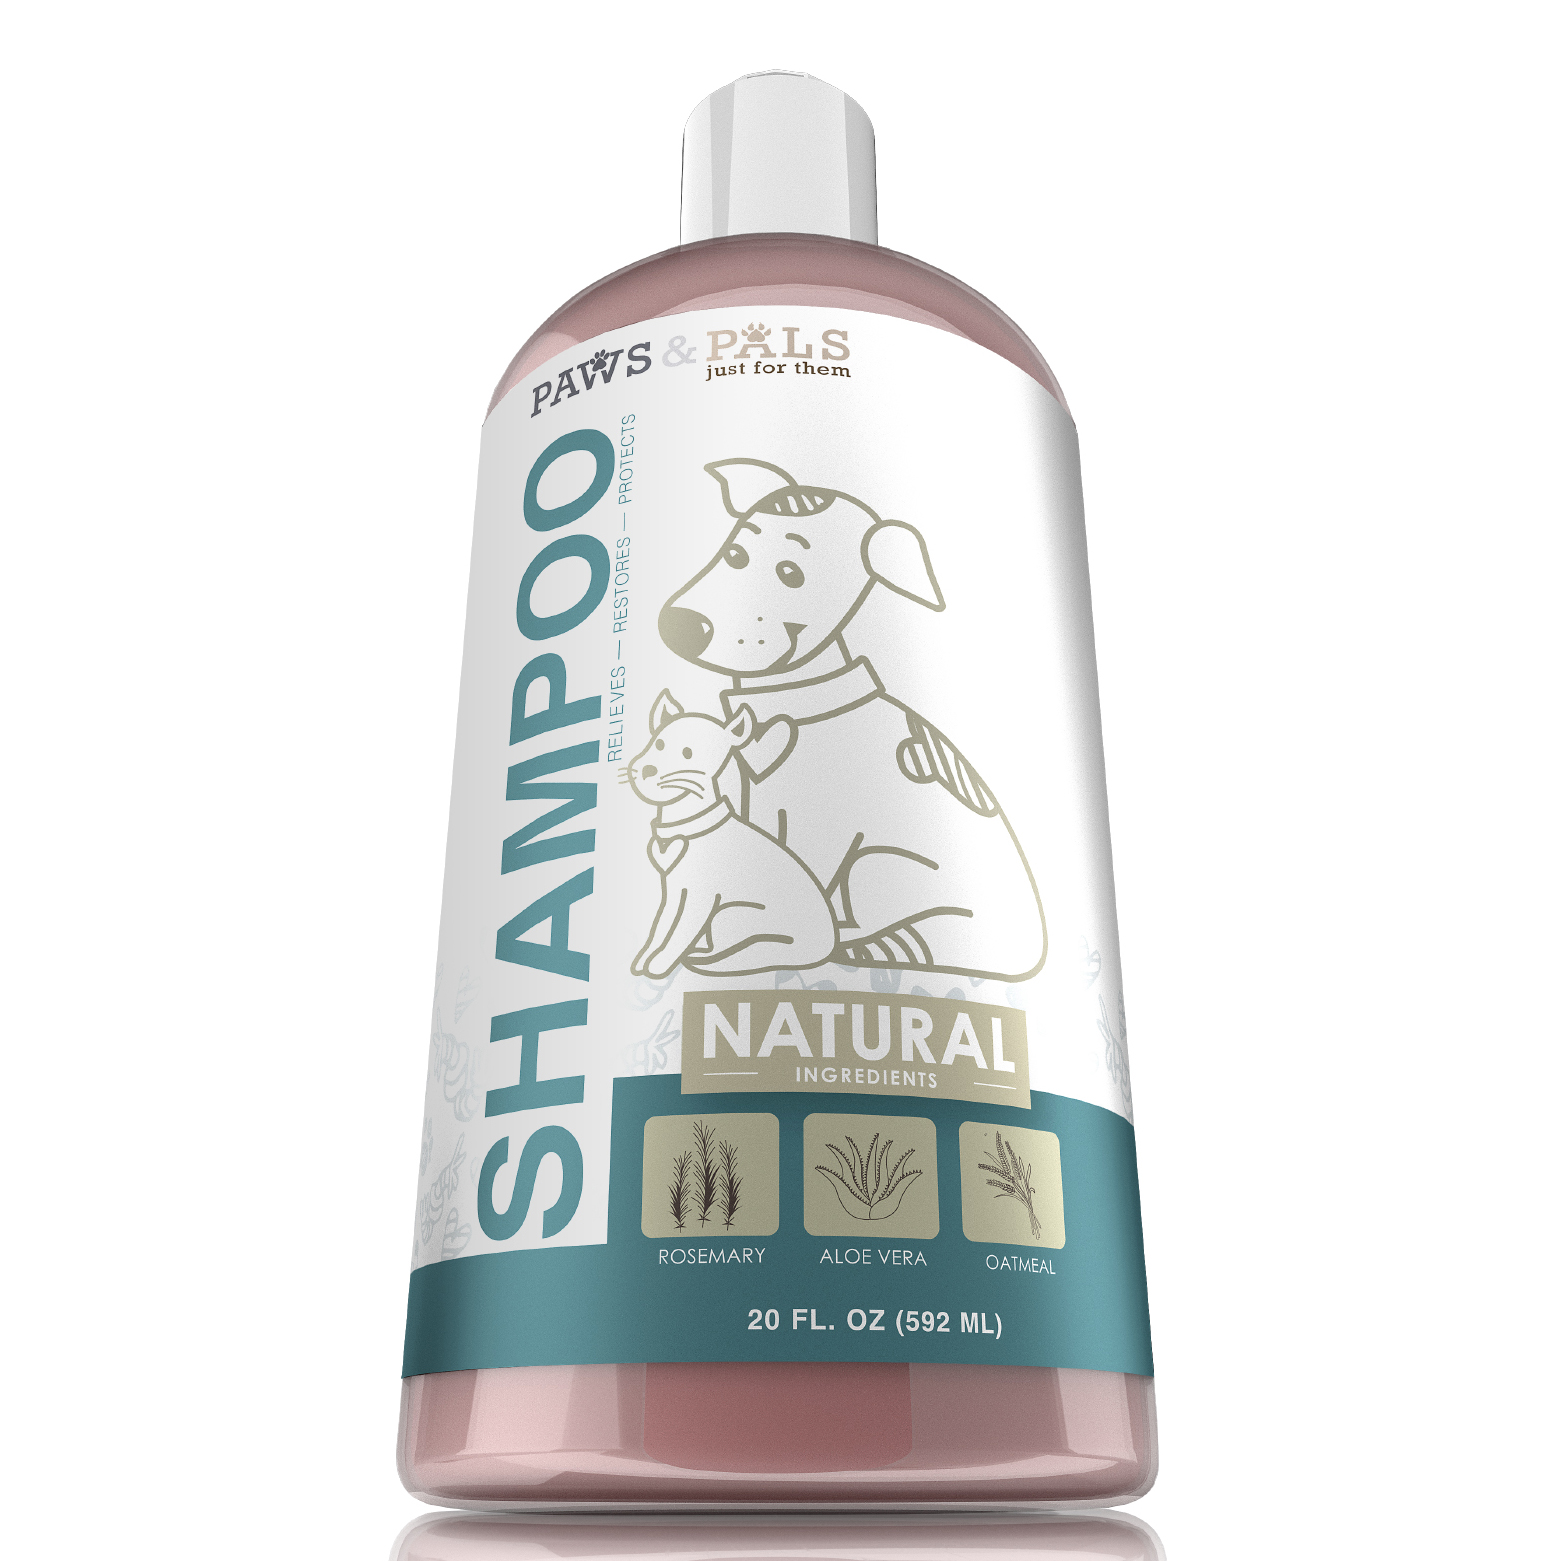 paws-and-pals-dog-shampoo-and-conditioner-for-pets